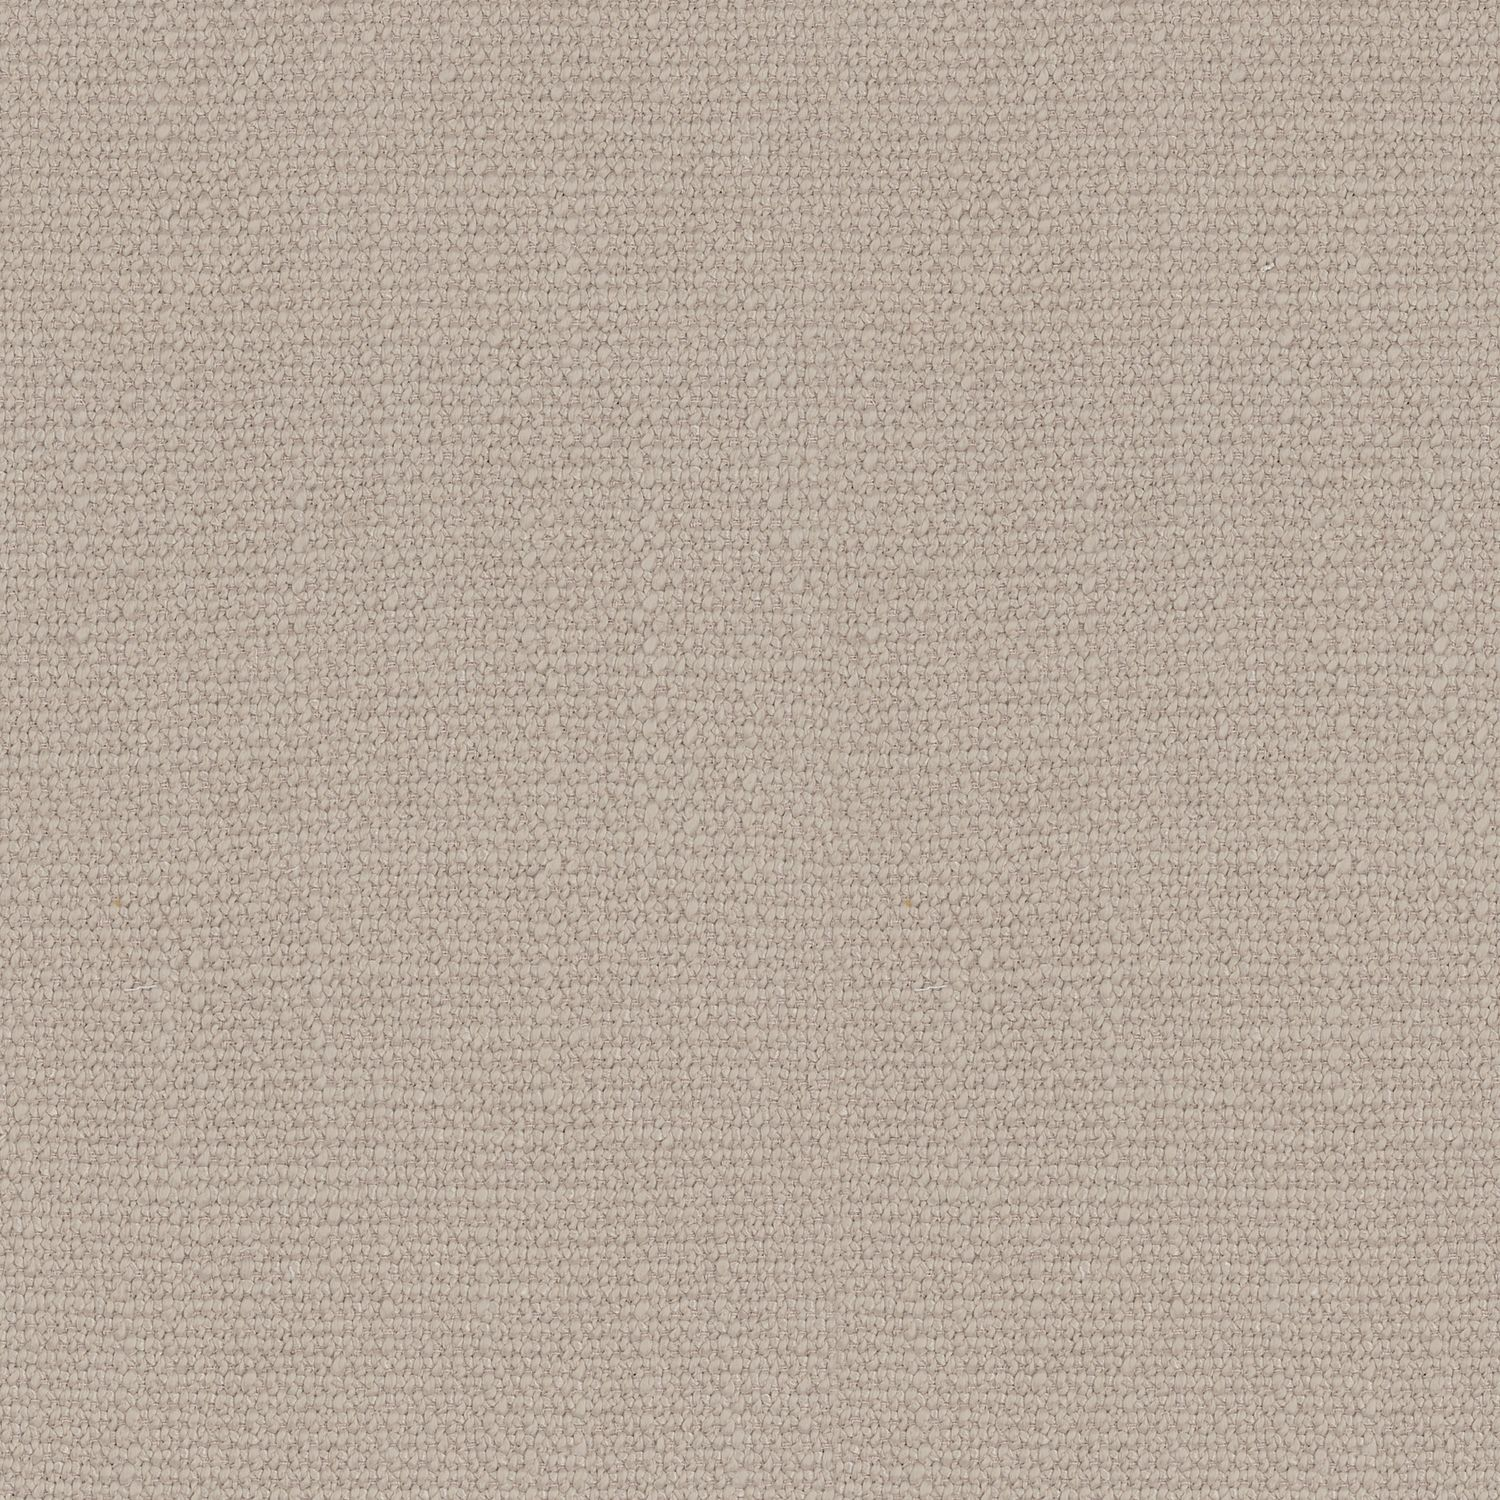 43590633 Collection - Rondo Fabric